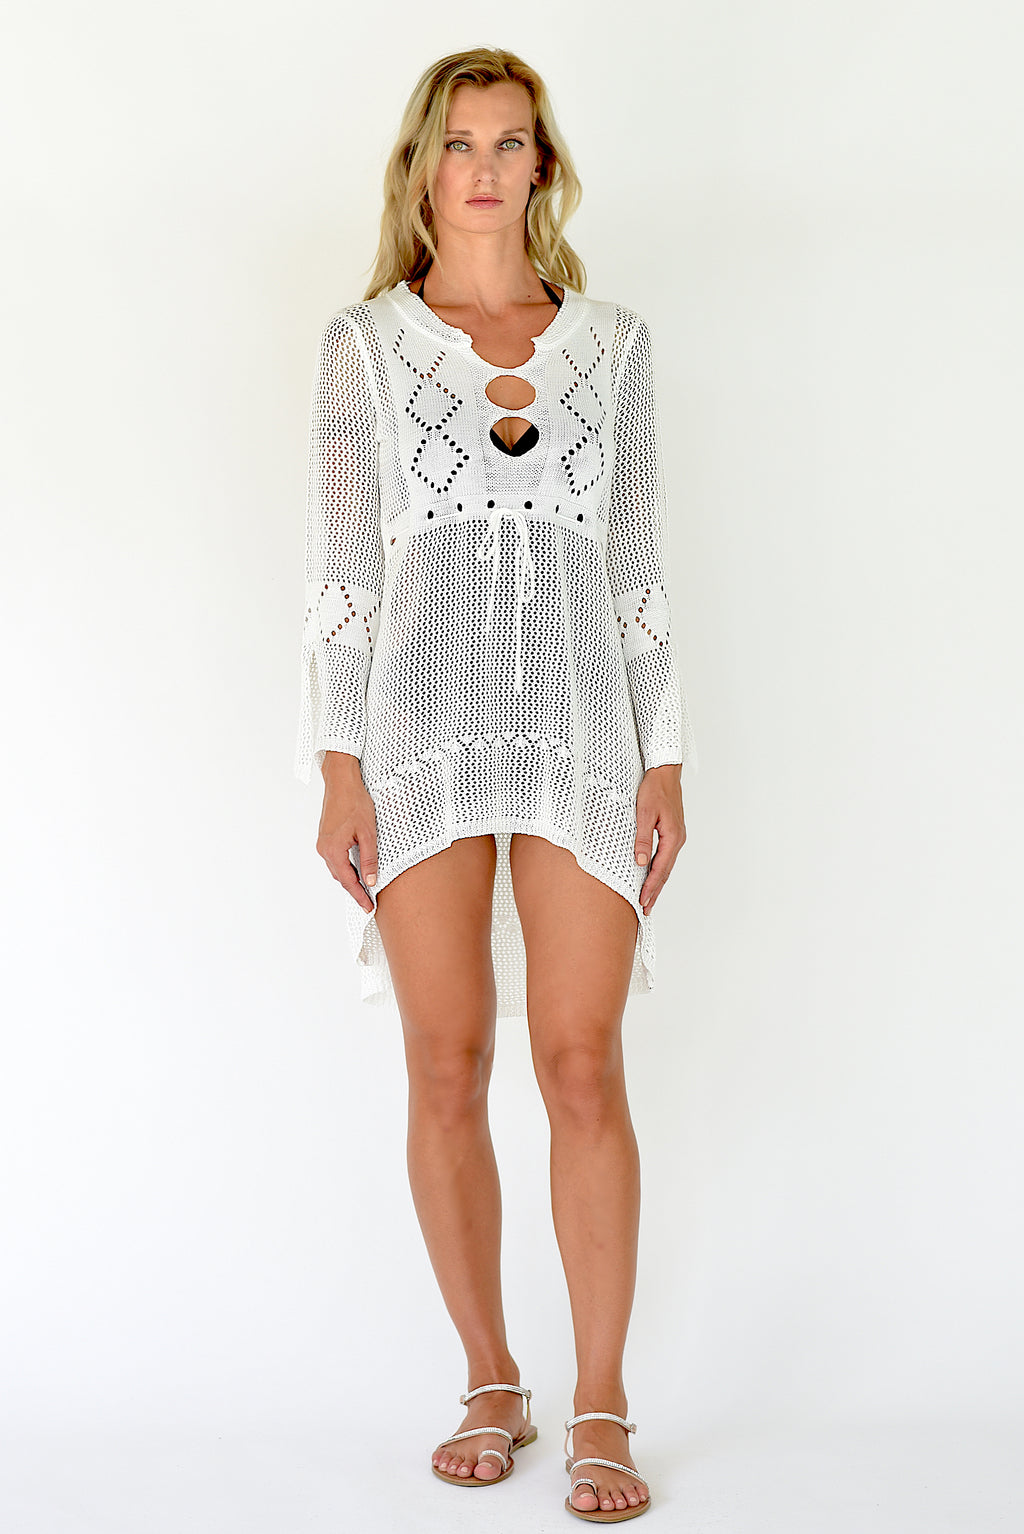 Wild Dunes Crochet Cover Up Tunic - White